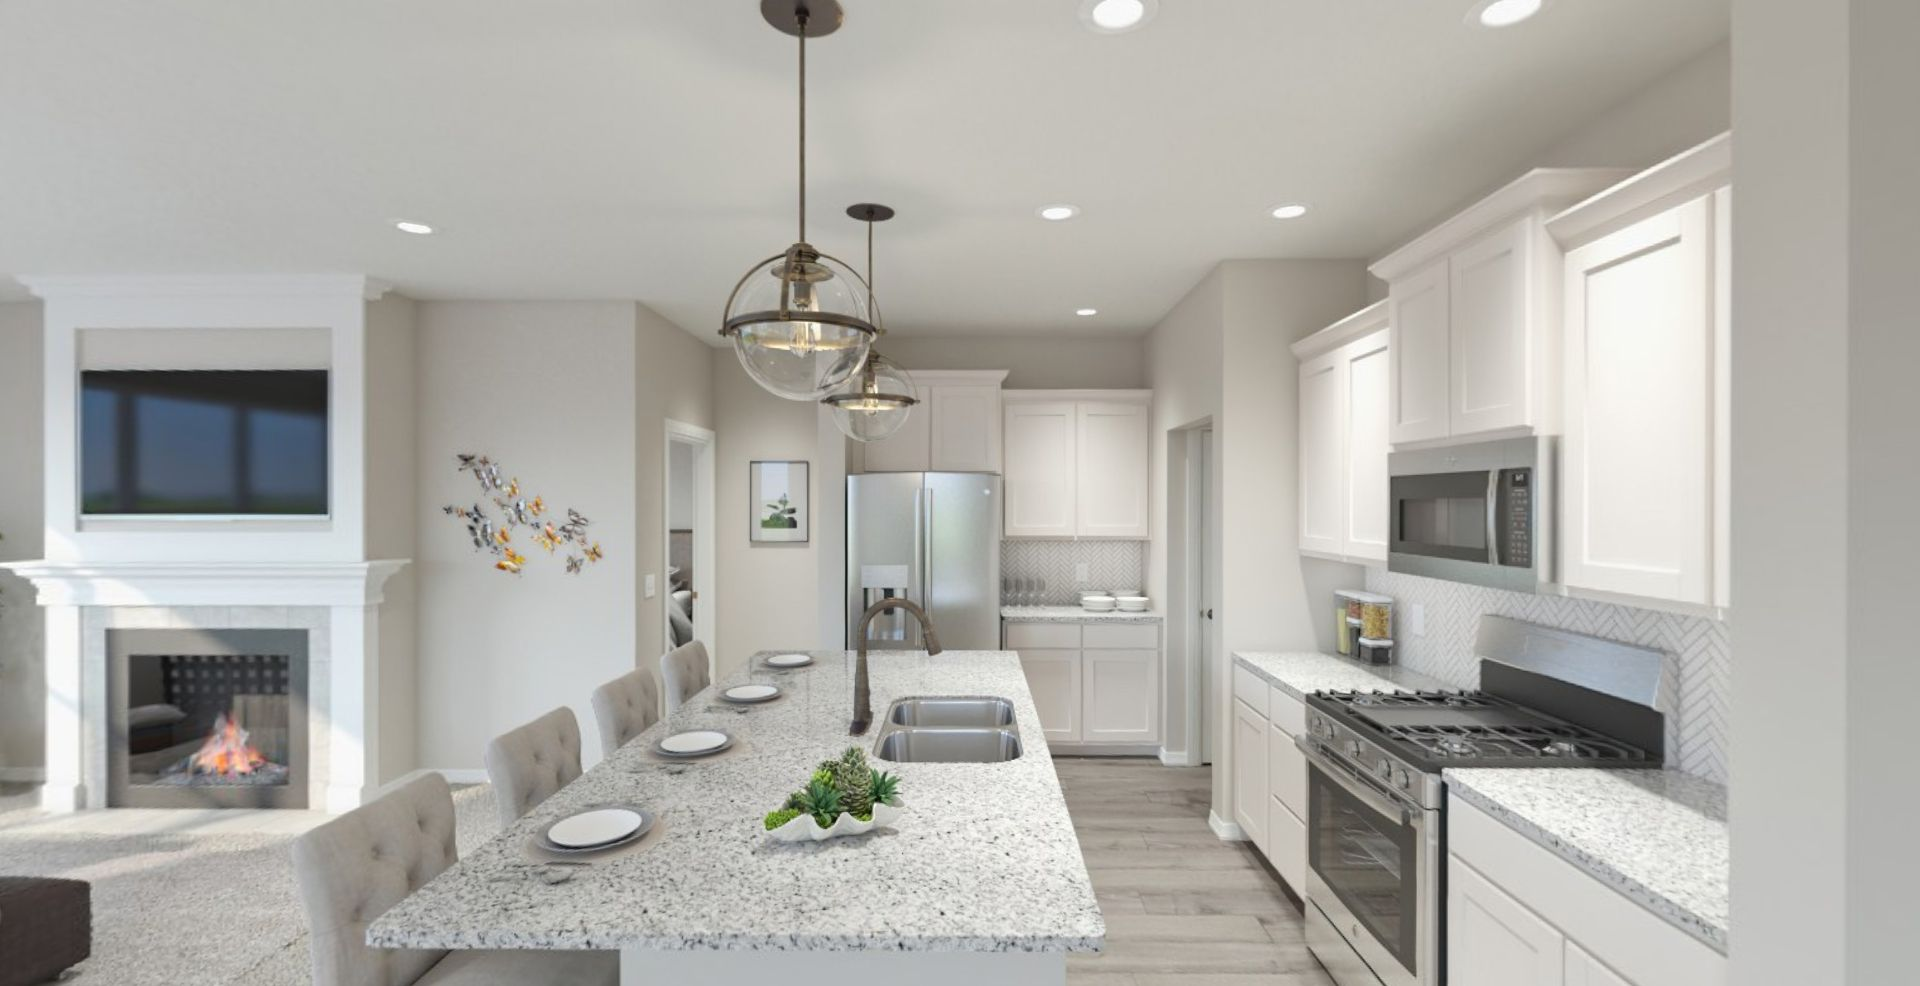 Kitchen featured in the Harmony By Olthof Homes in Gary, IN